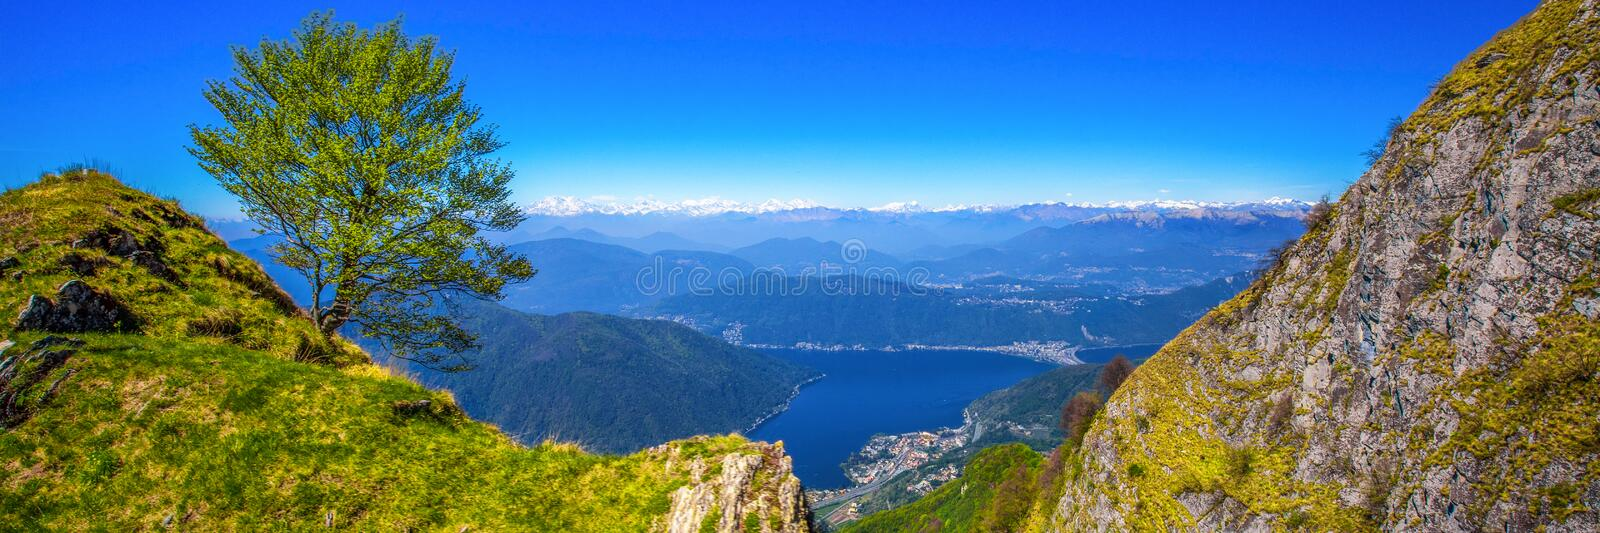 Lugano city, San Salvatore mountain and Lugano lake from Monte Generoso, Canton Ticino, Switzerland royalty free stock photos